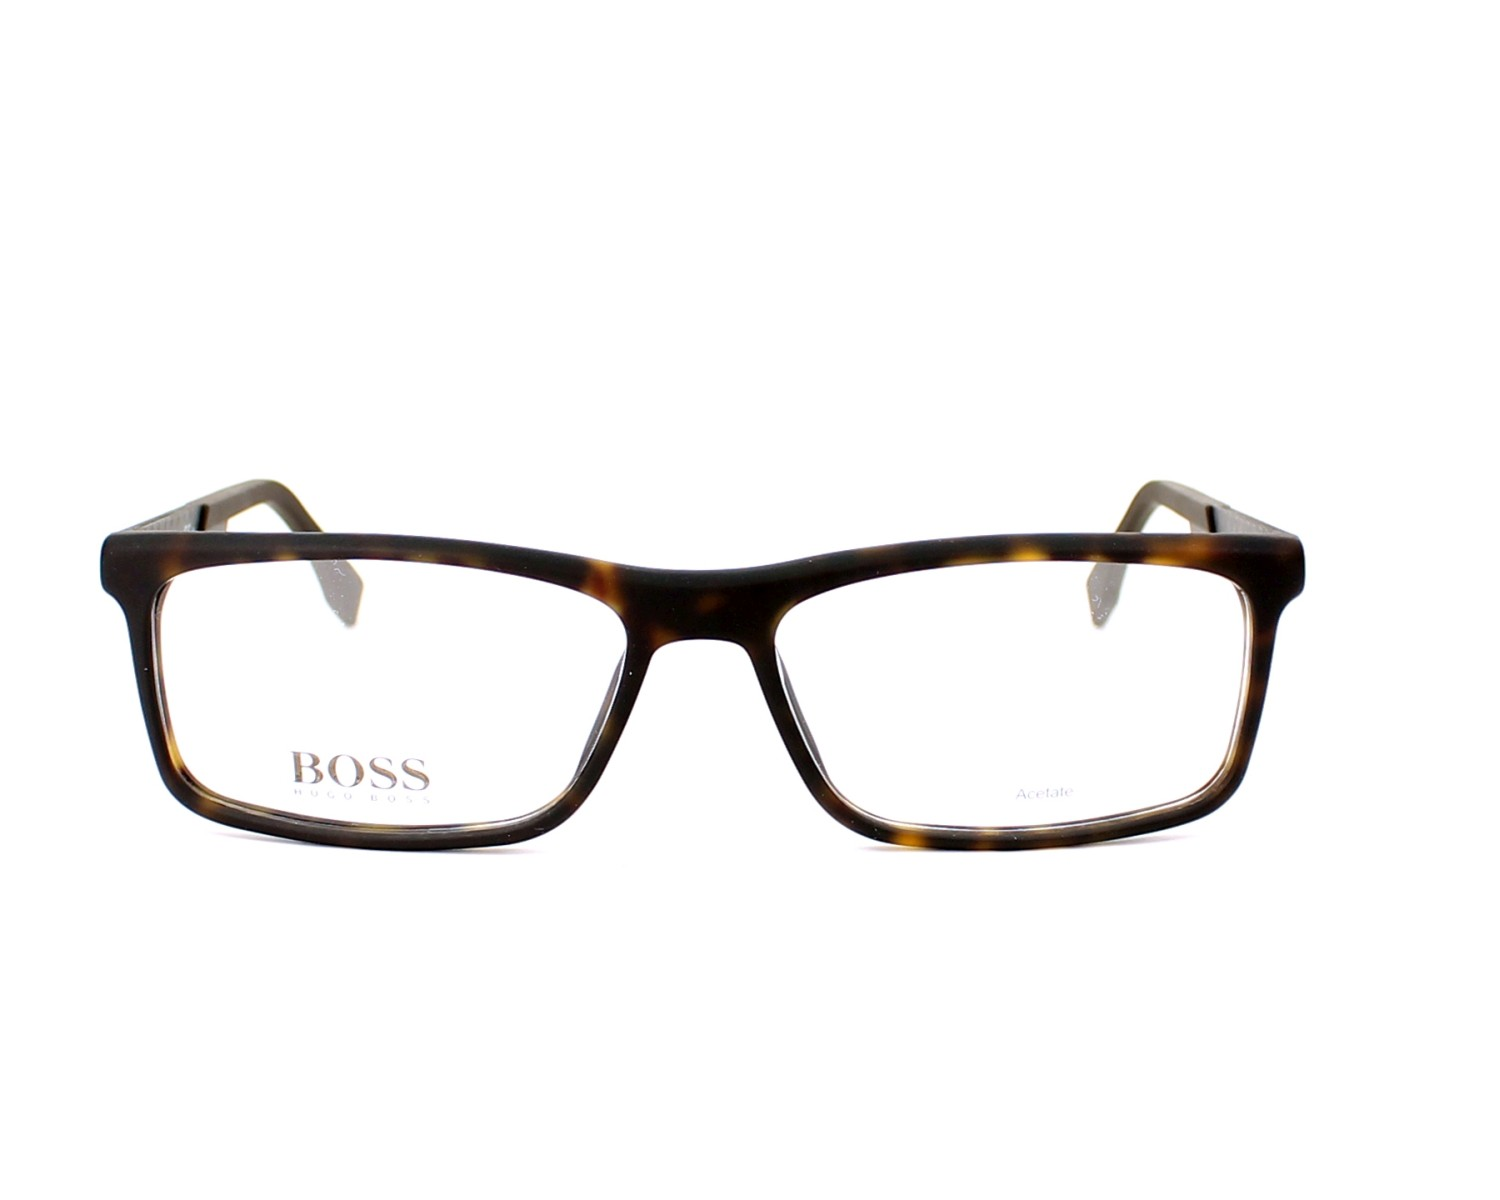 eyeglasses Hugo Boss BOSS-0774 HXF 56-15 Brown Grey front view 2c6a0c4afb